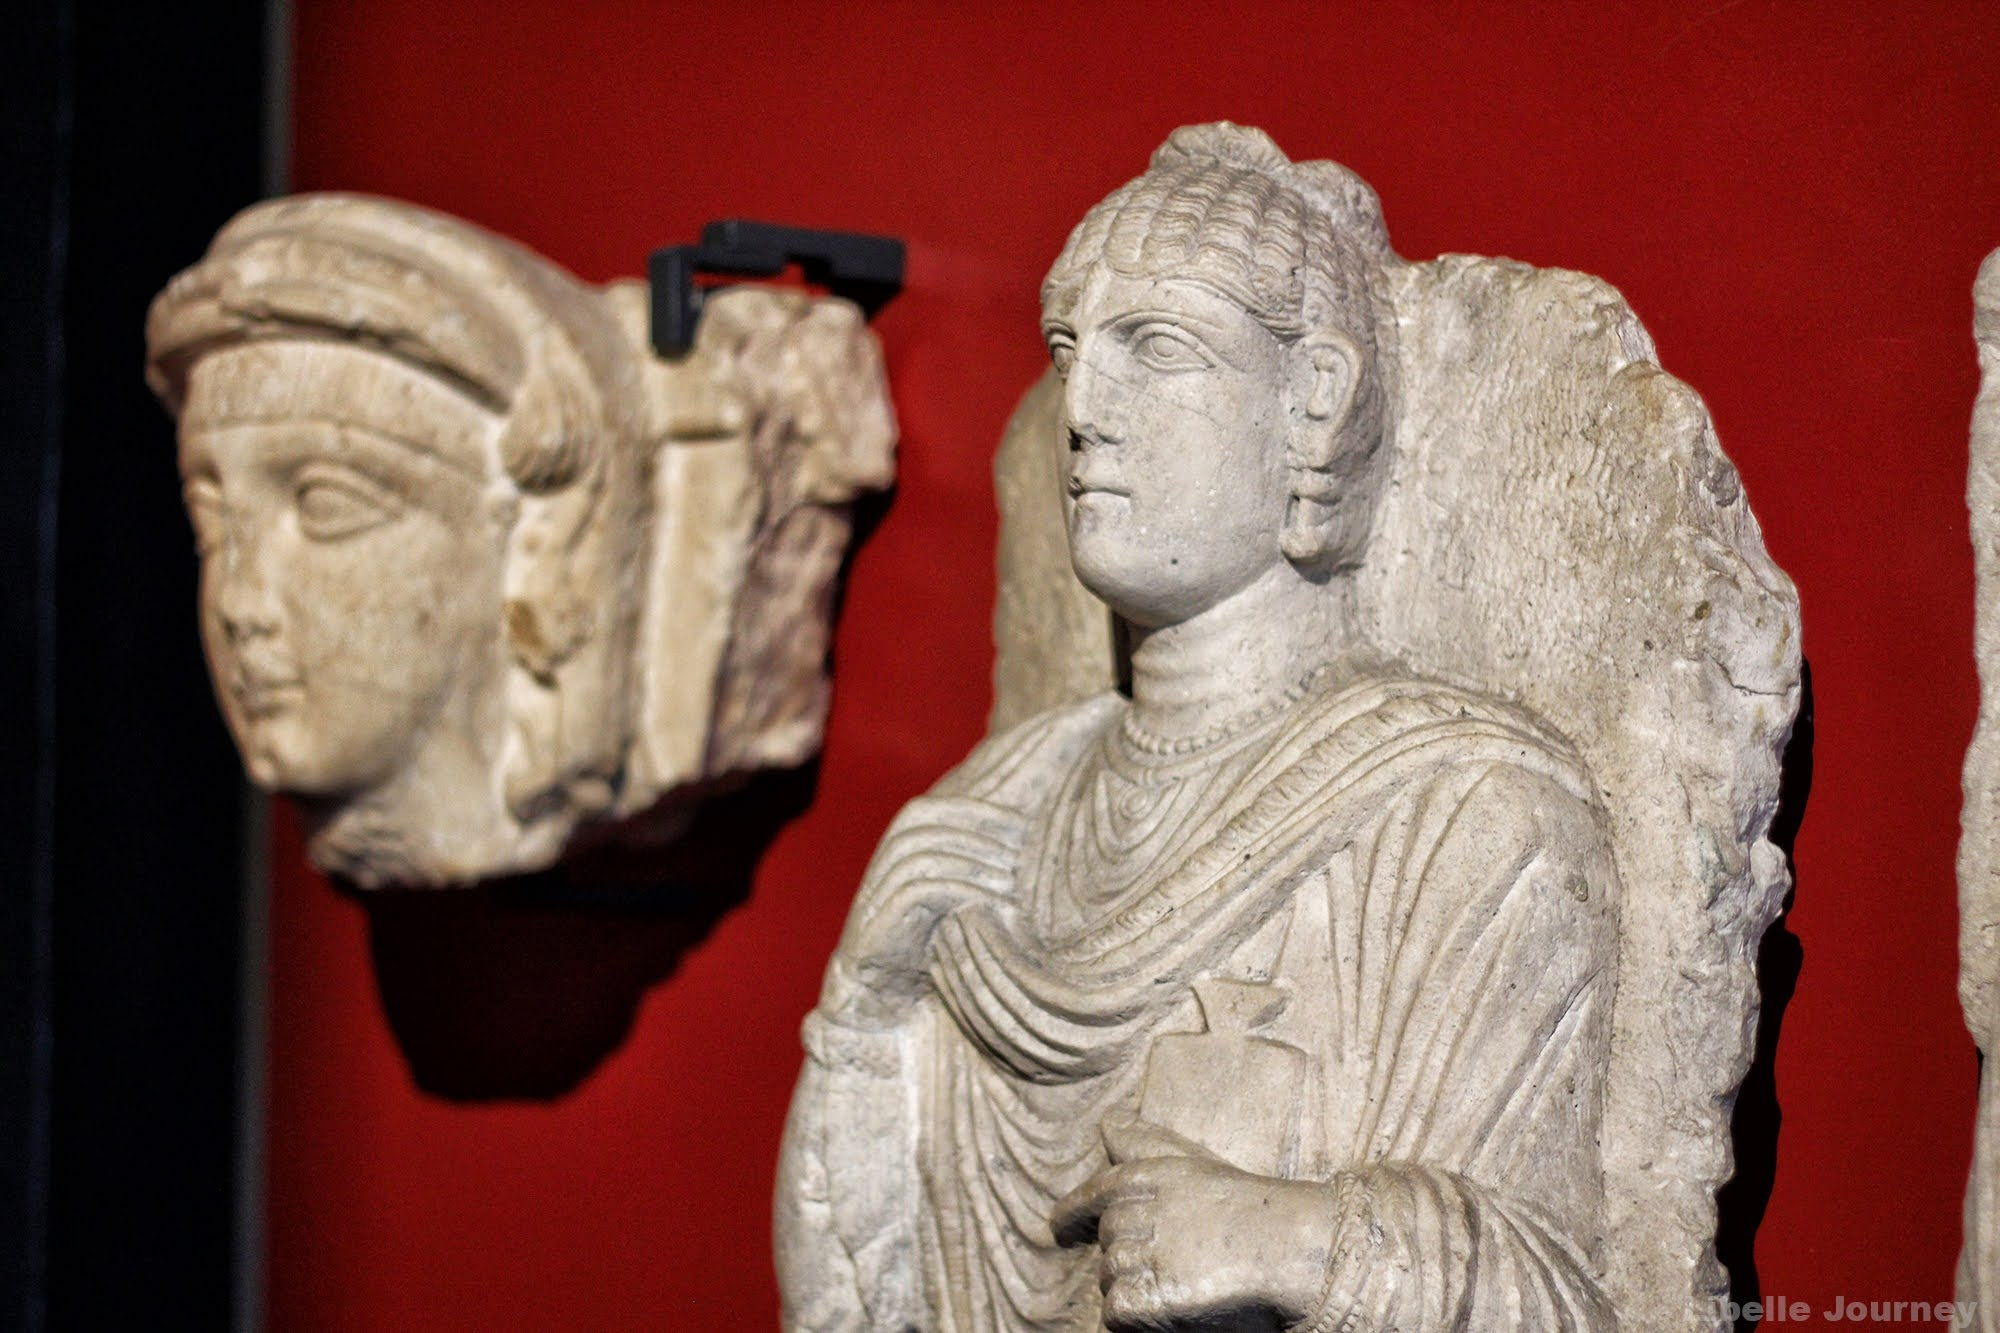 series of funerary portraits, from the rock tombs of Palmyra